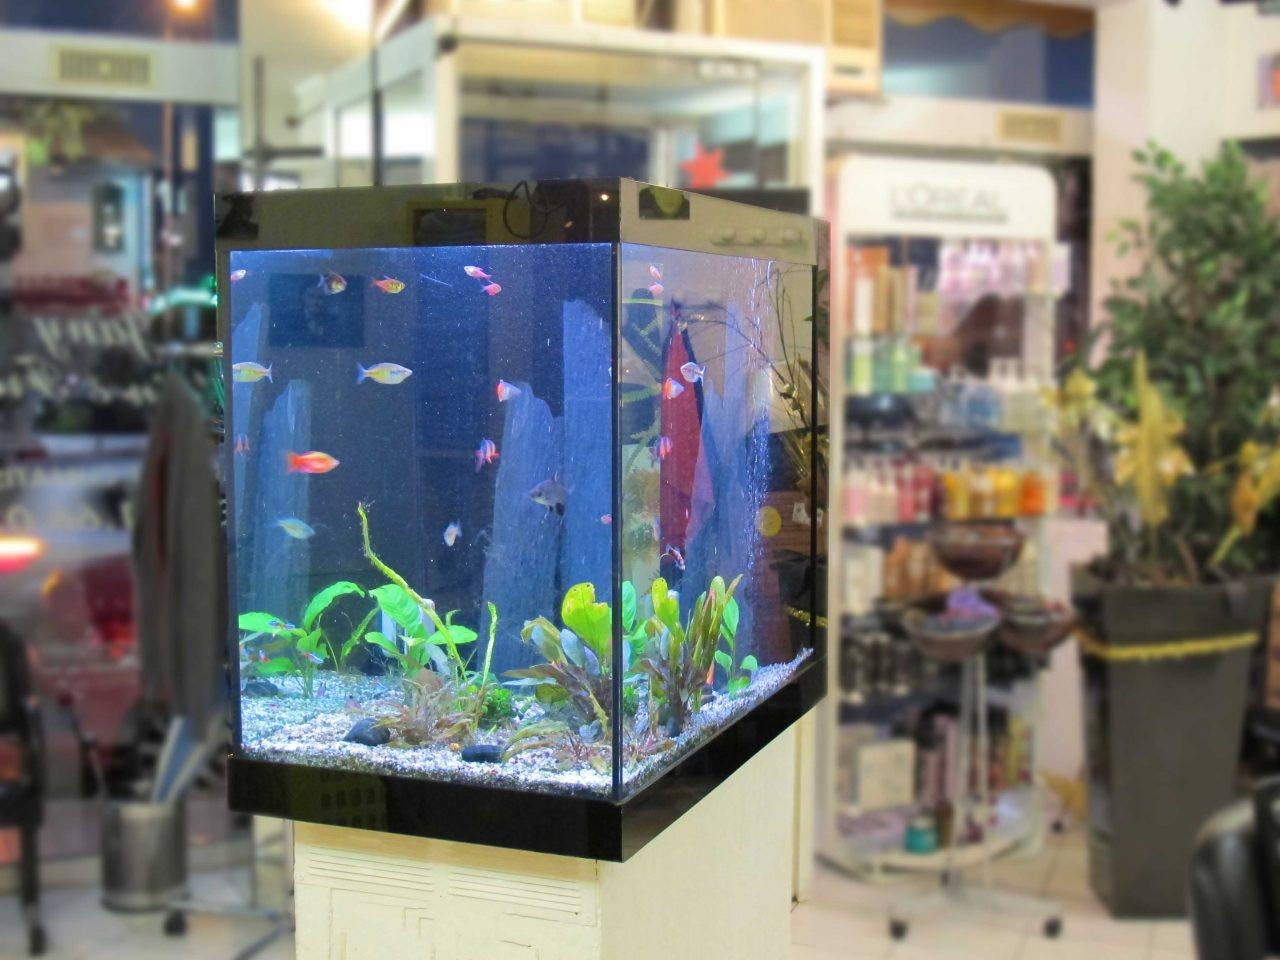 Fabrication vente aquariums eau douce odyssee aquarium for Vente poisson aquarium particulier